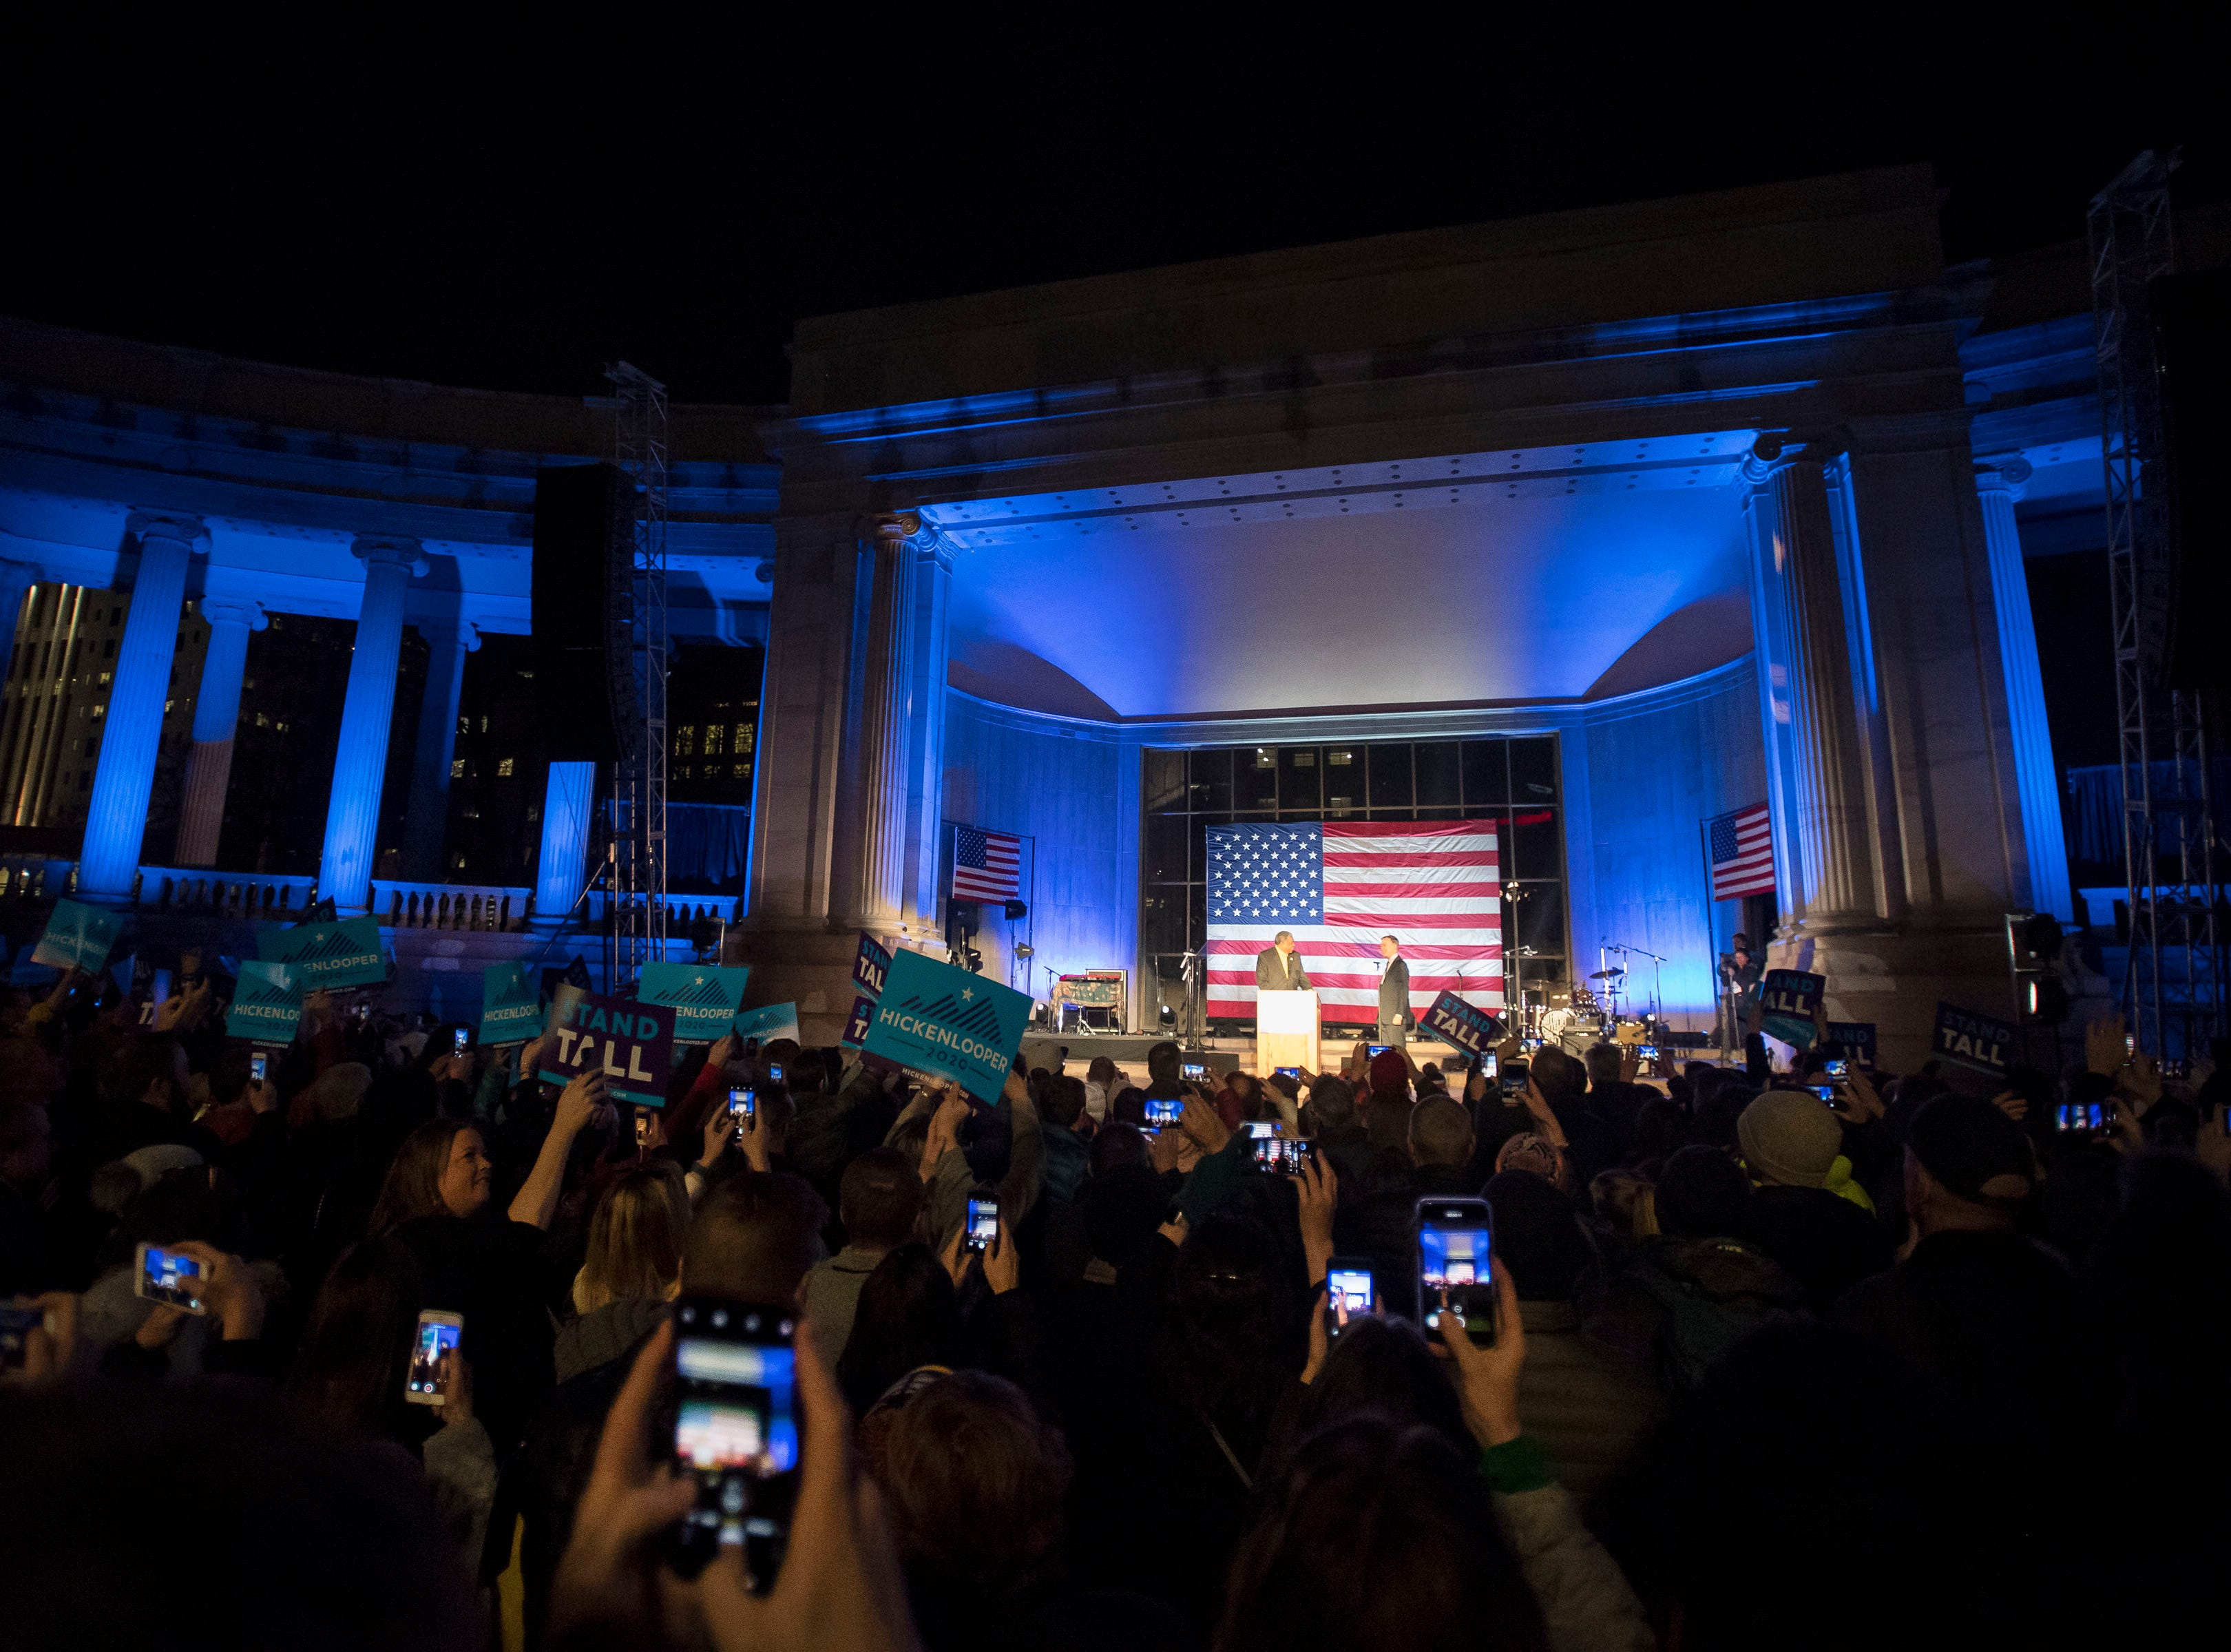 Rally participants record the moment on their phones as former Denver mayor Wellington Webb welcomes former Colorado governor John Hickenlooper on stage at his presidential campaign kick-off rally on Thursday, March 7, 2019, at the Greek Ampitheatre in Civic Center Park in Denver, Colo.